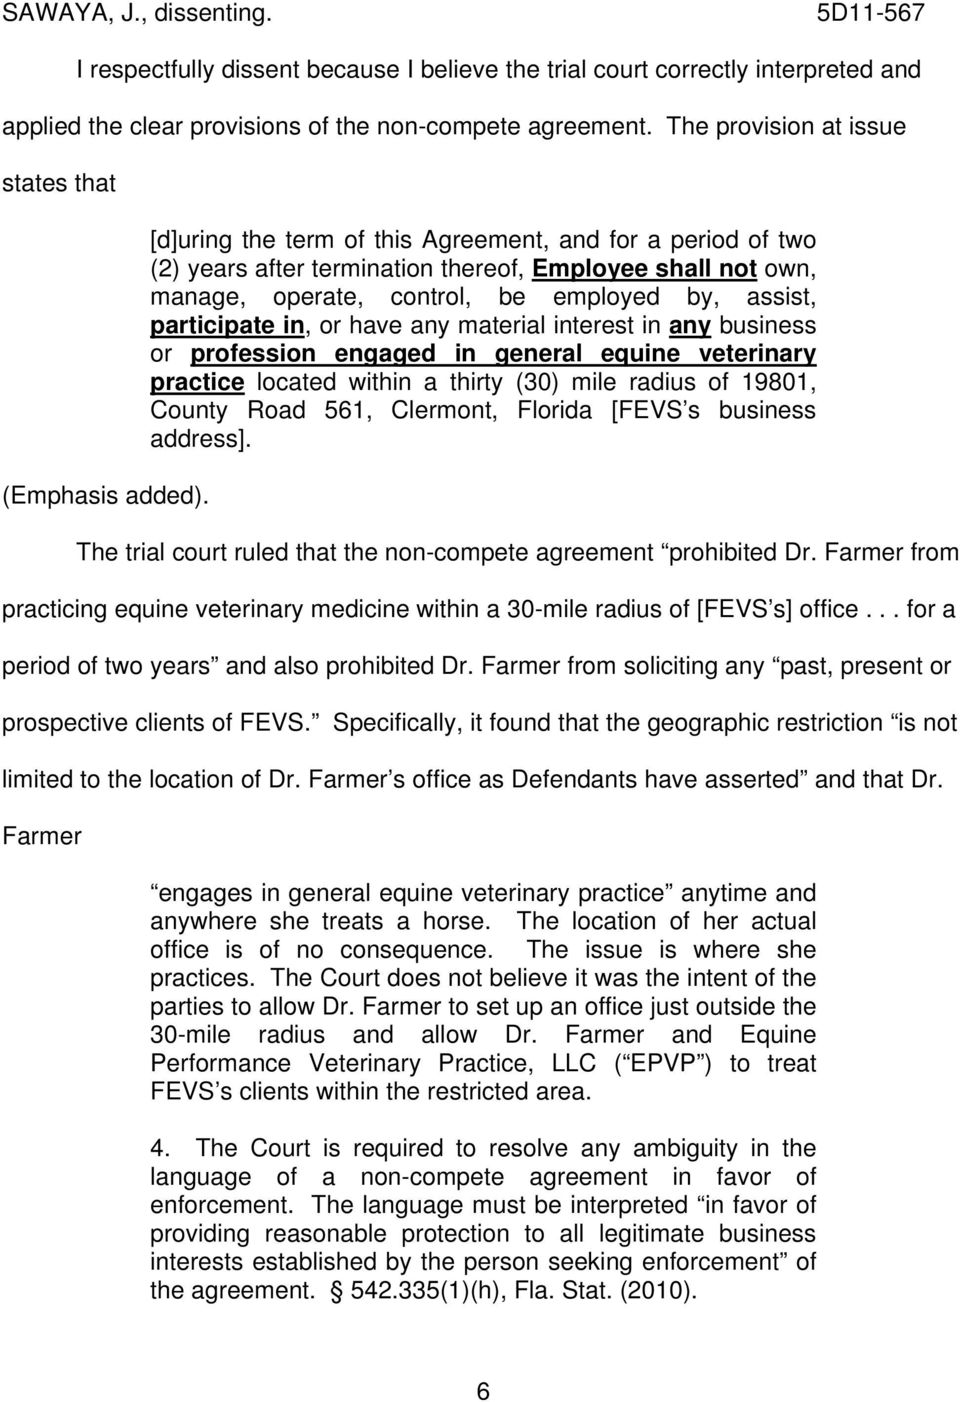 [d]uring the term of this Agreement, and for a period of two (2) years after termination thereof, Employee shall not own, manage, operate, control, be employed by, assist, participate in, or have any